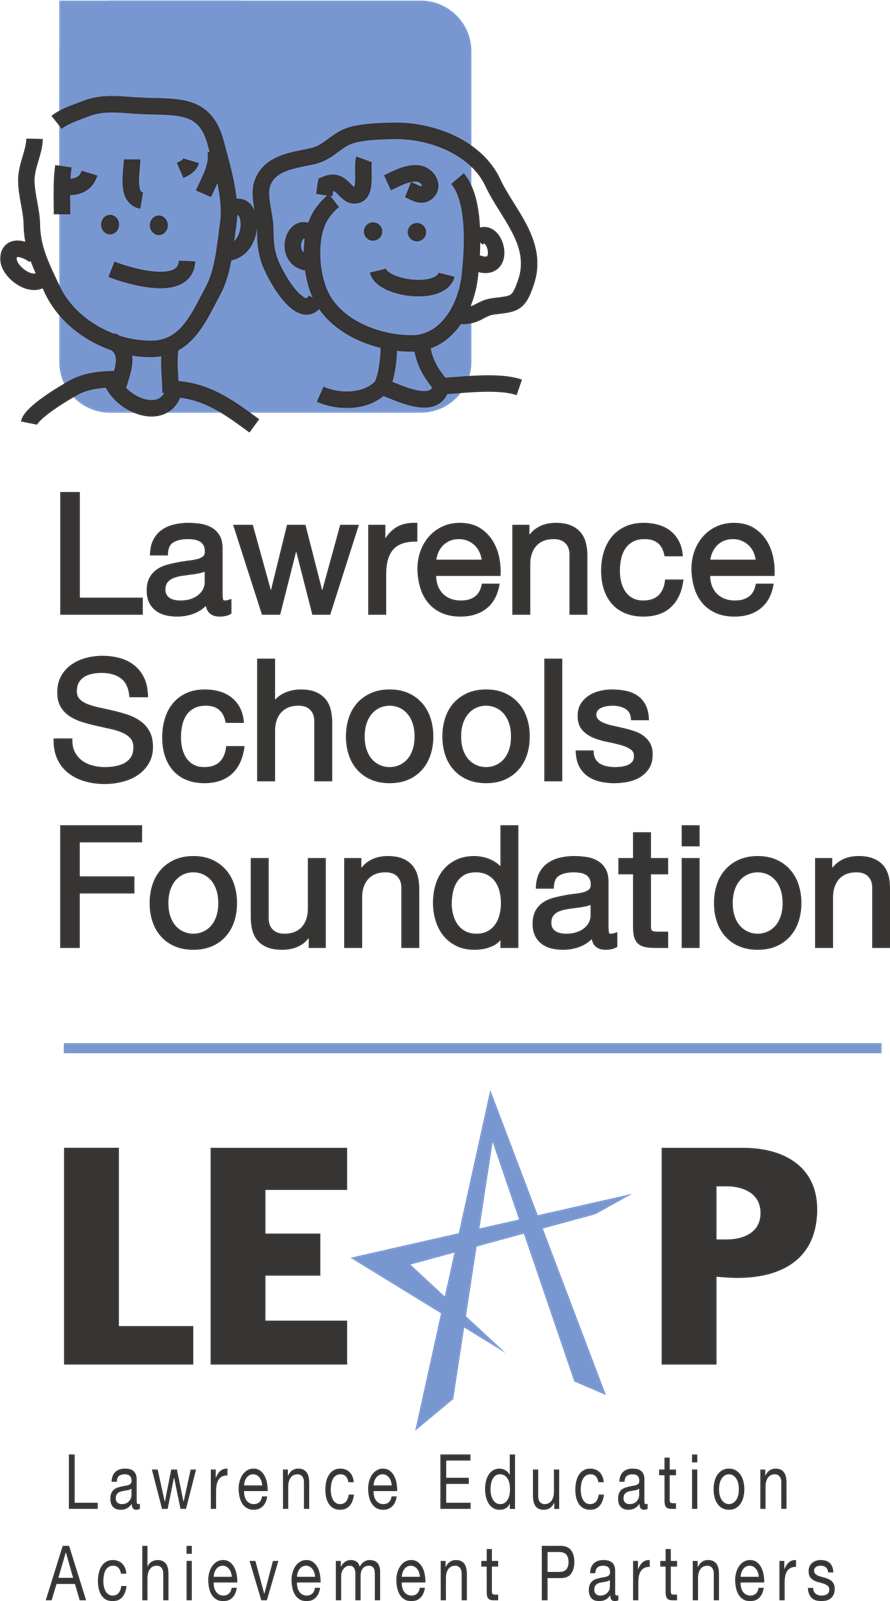 Lawrence Schools Foundation logo